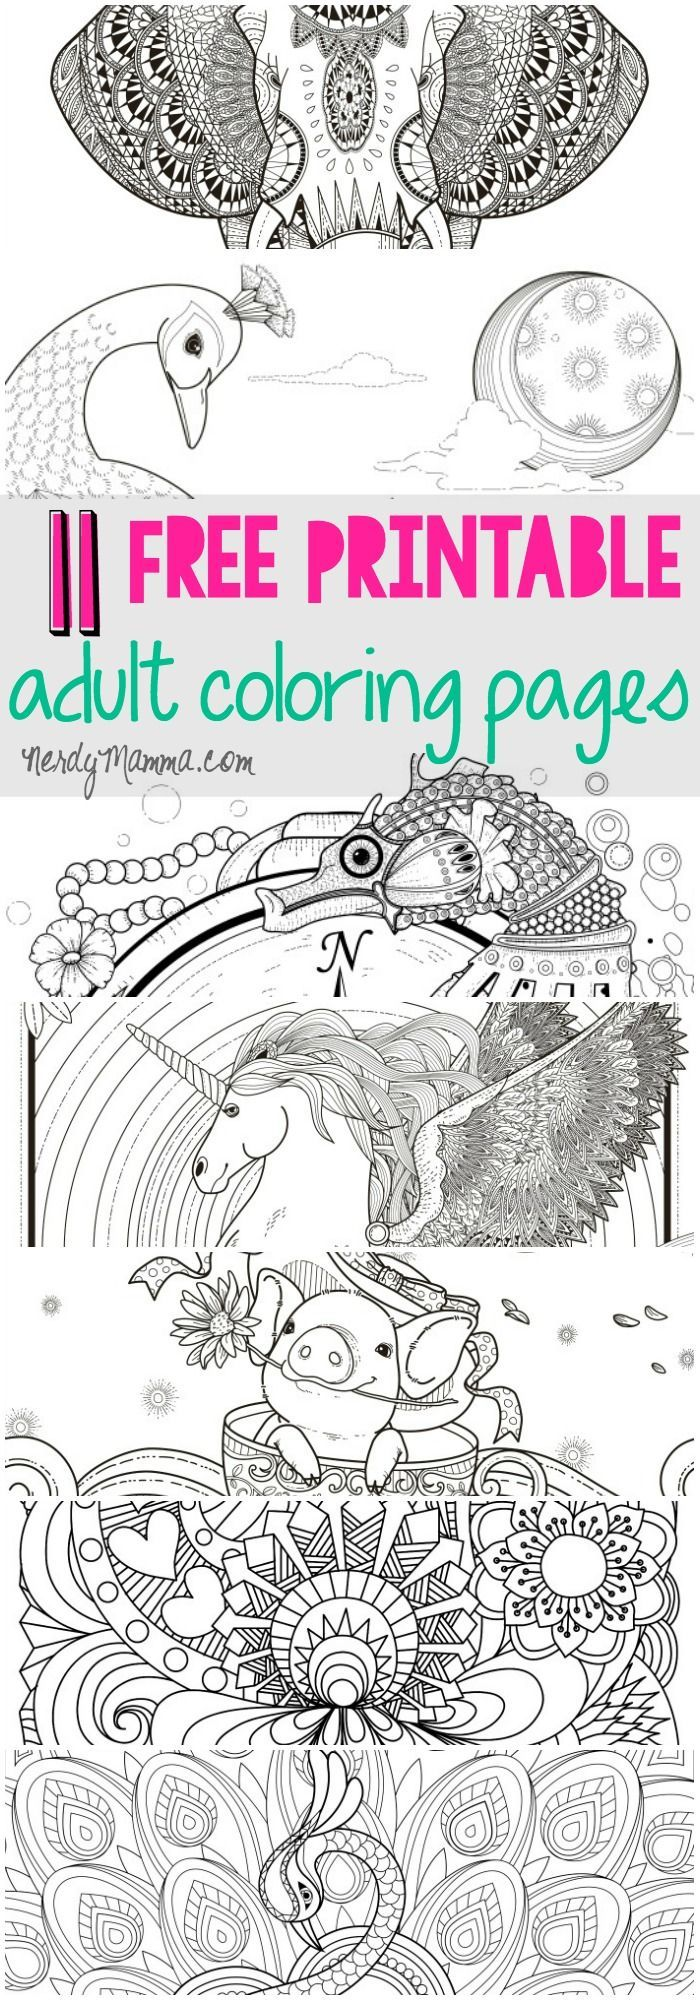 Free printable coloring pages that say i love you - 11 Free Printable Adult Coloring Pages